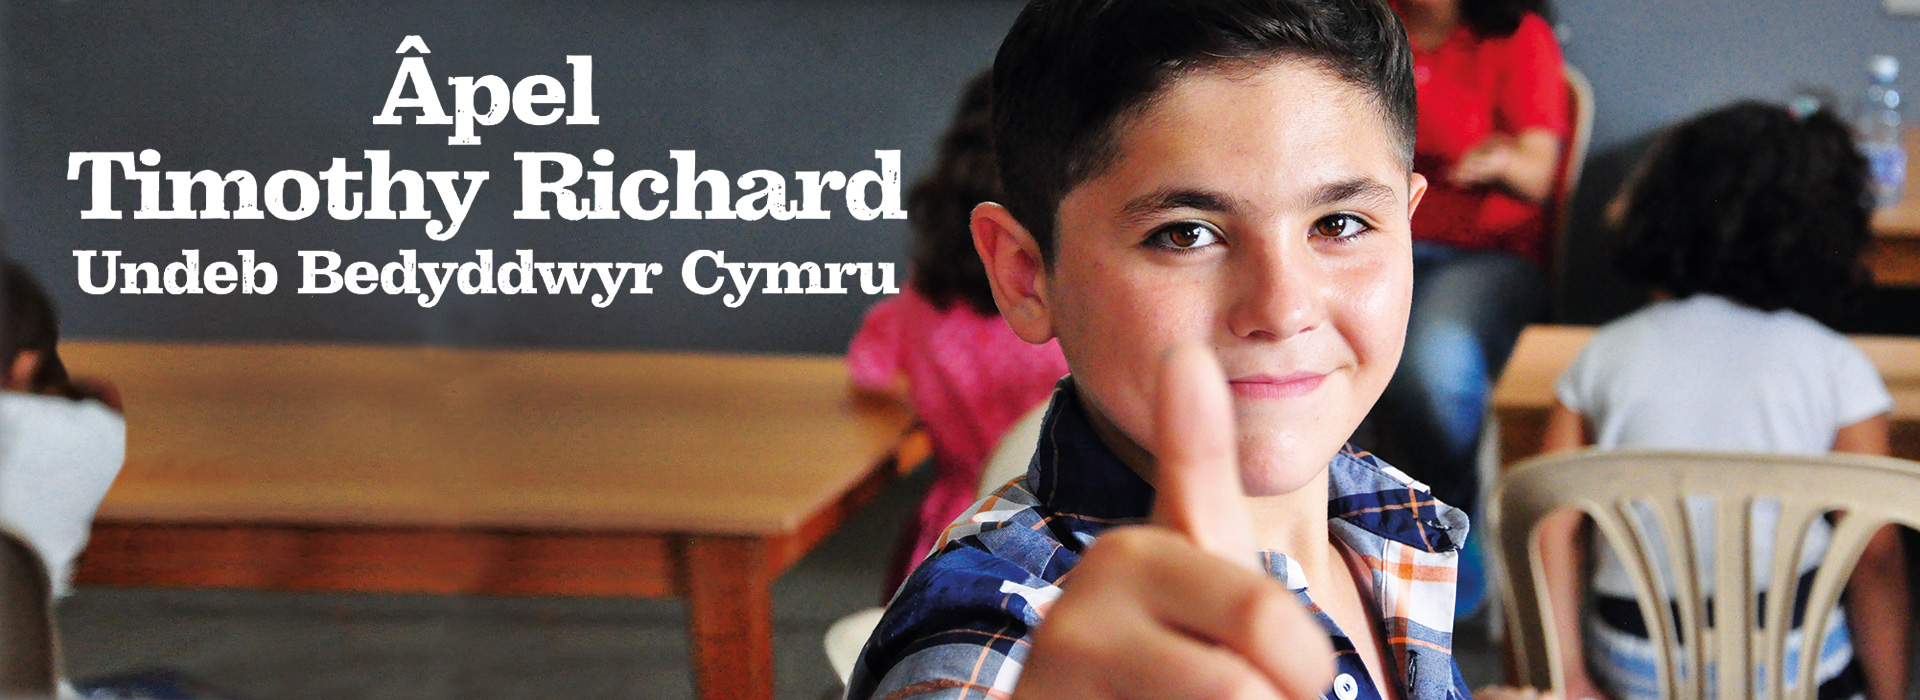 Banner image featuring a boy in a classroom giving the thumbs up and the Welsh title 'Apel Timothy Richard Undeb Bedyddwyr Cymru'